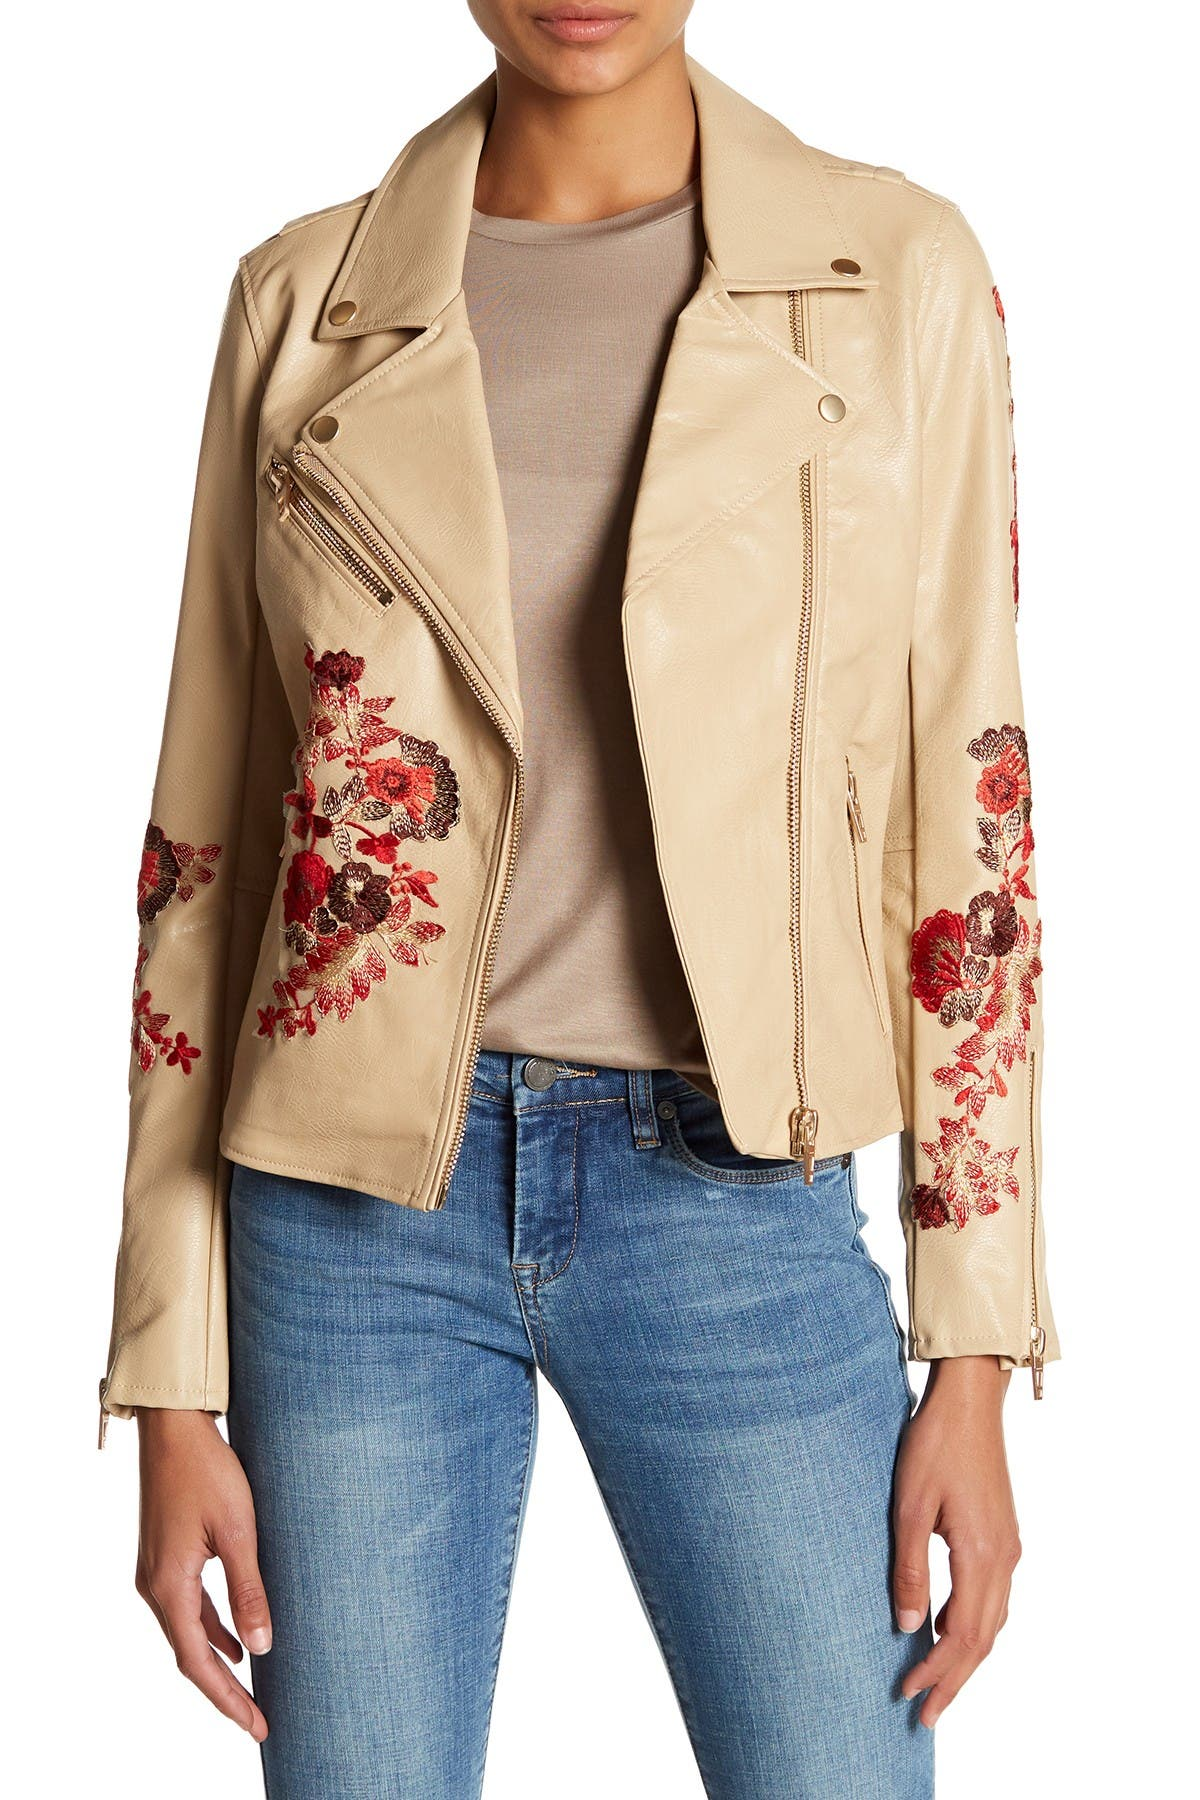 Image of BLANKNYC Denim Floral Embroidery Faux Leather Moto Jacket